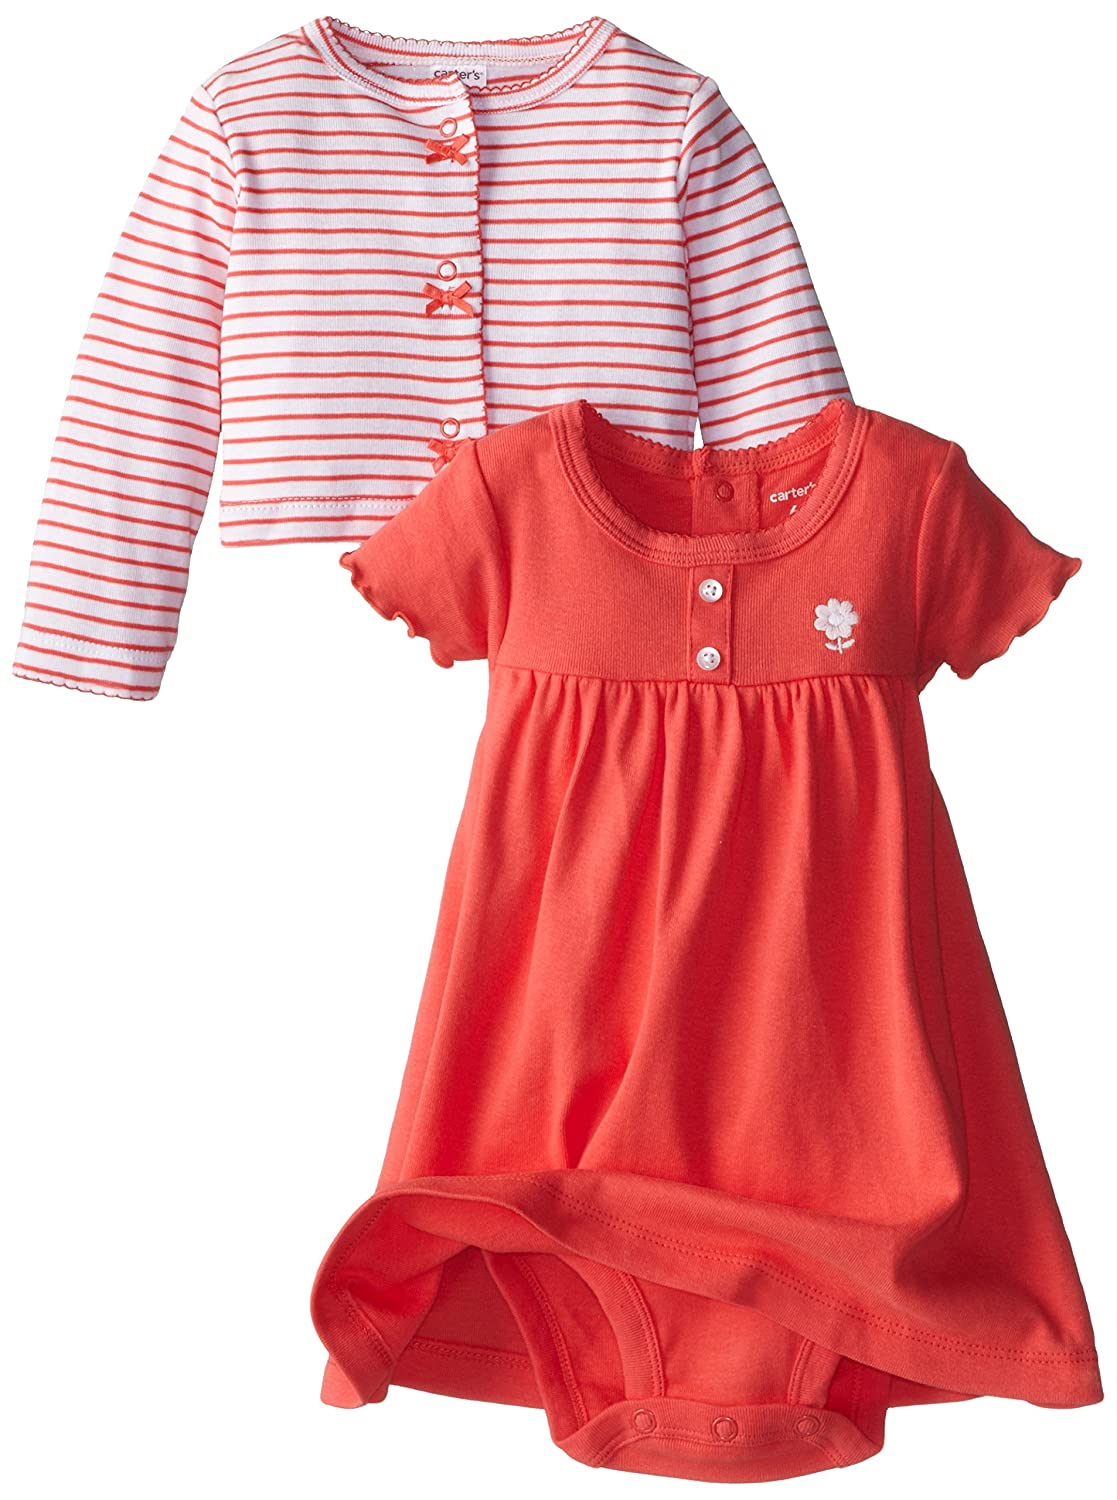 Carters Baby Girls Classic